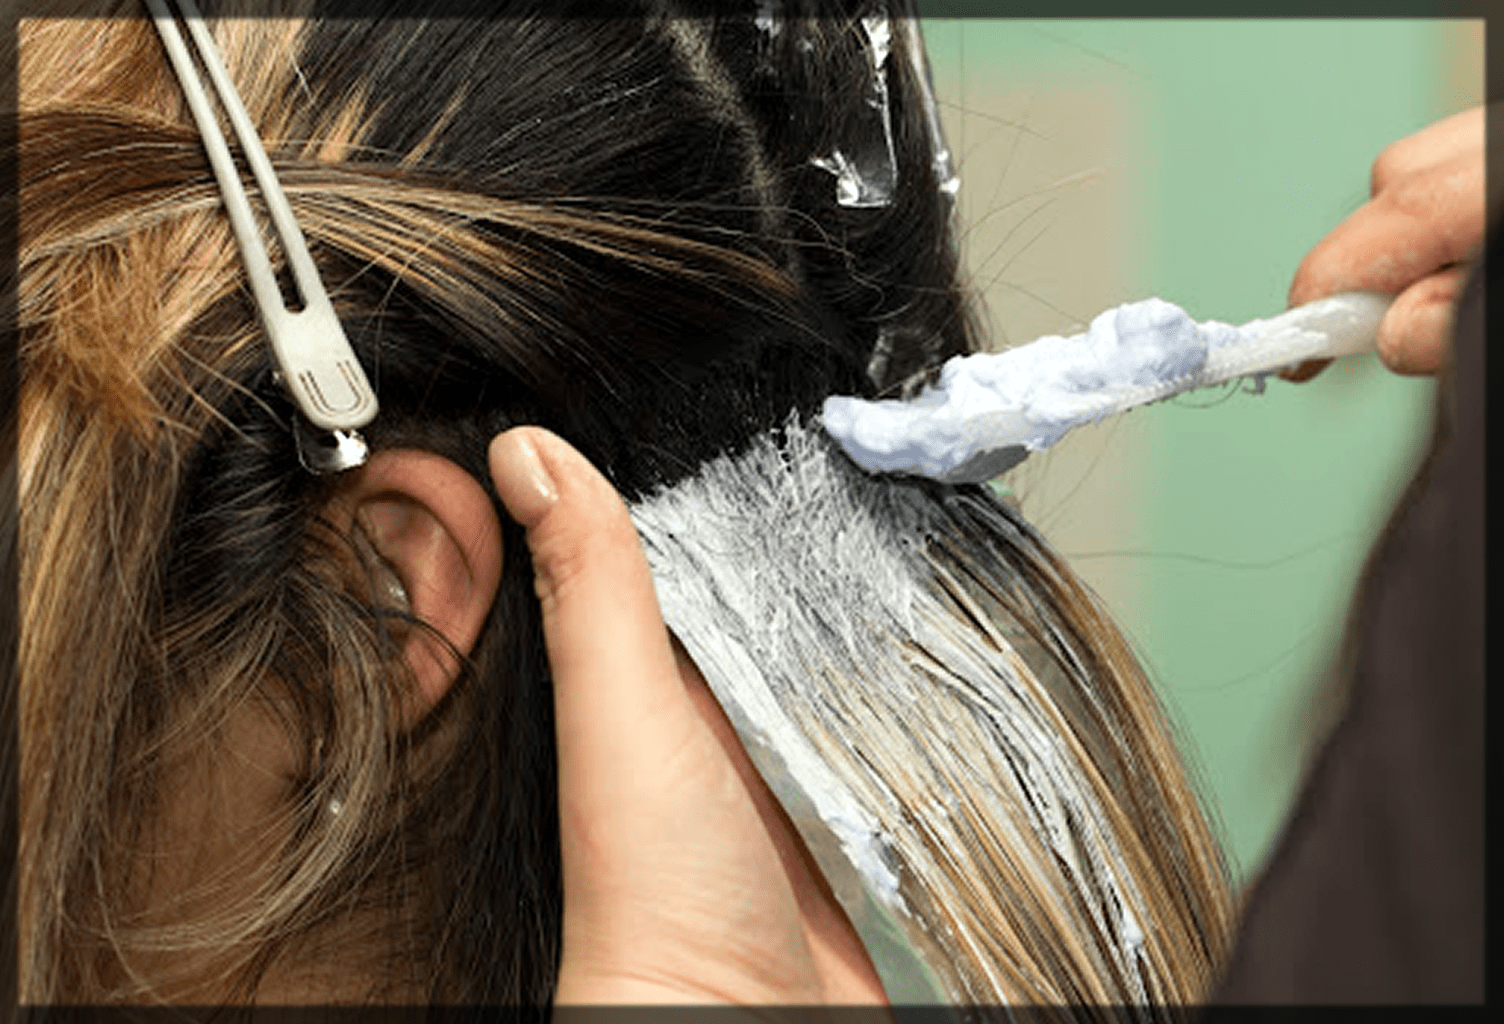 apply the colour on hairs as a test